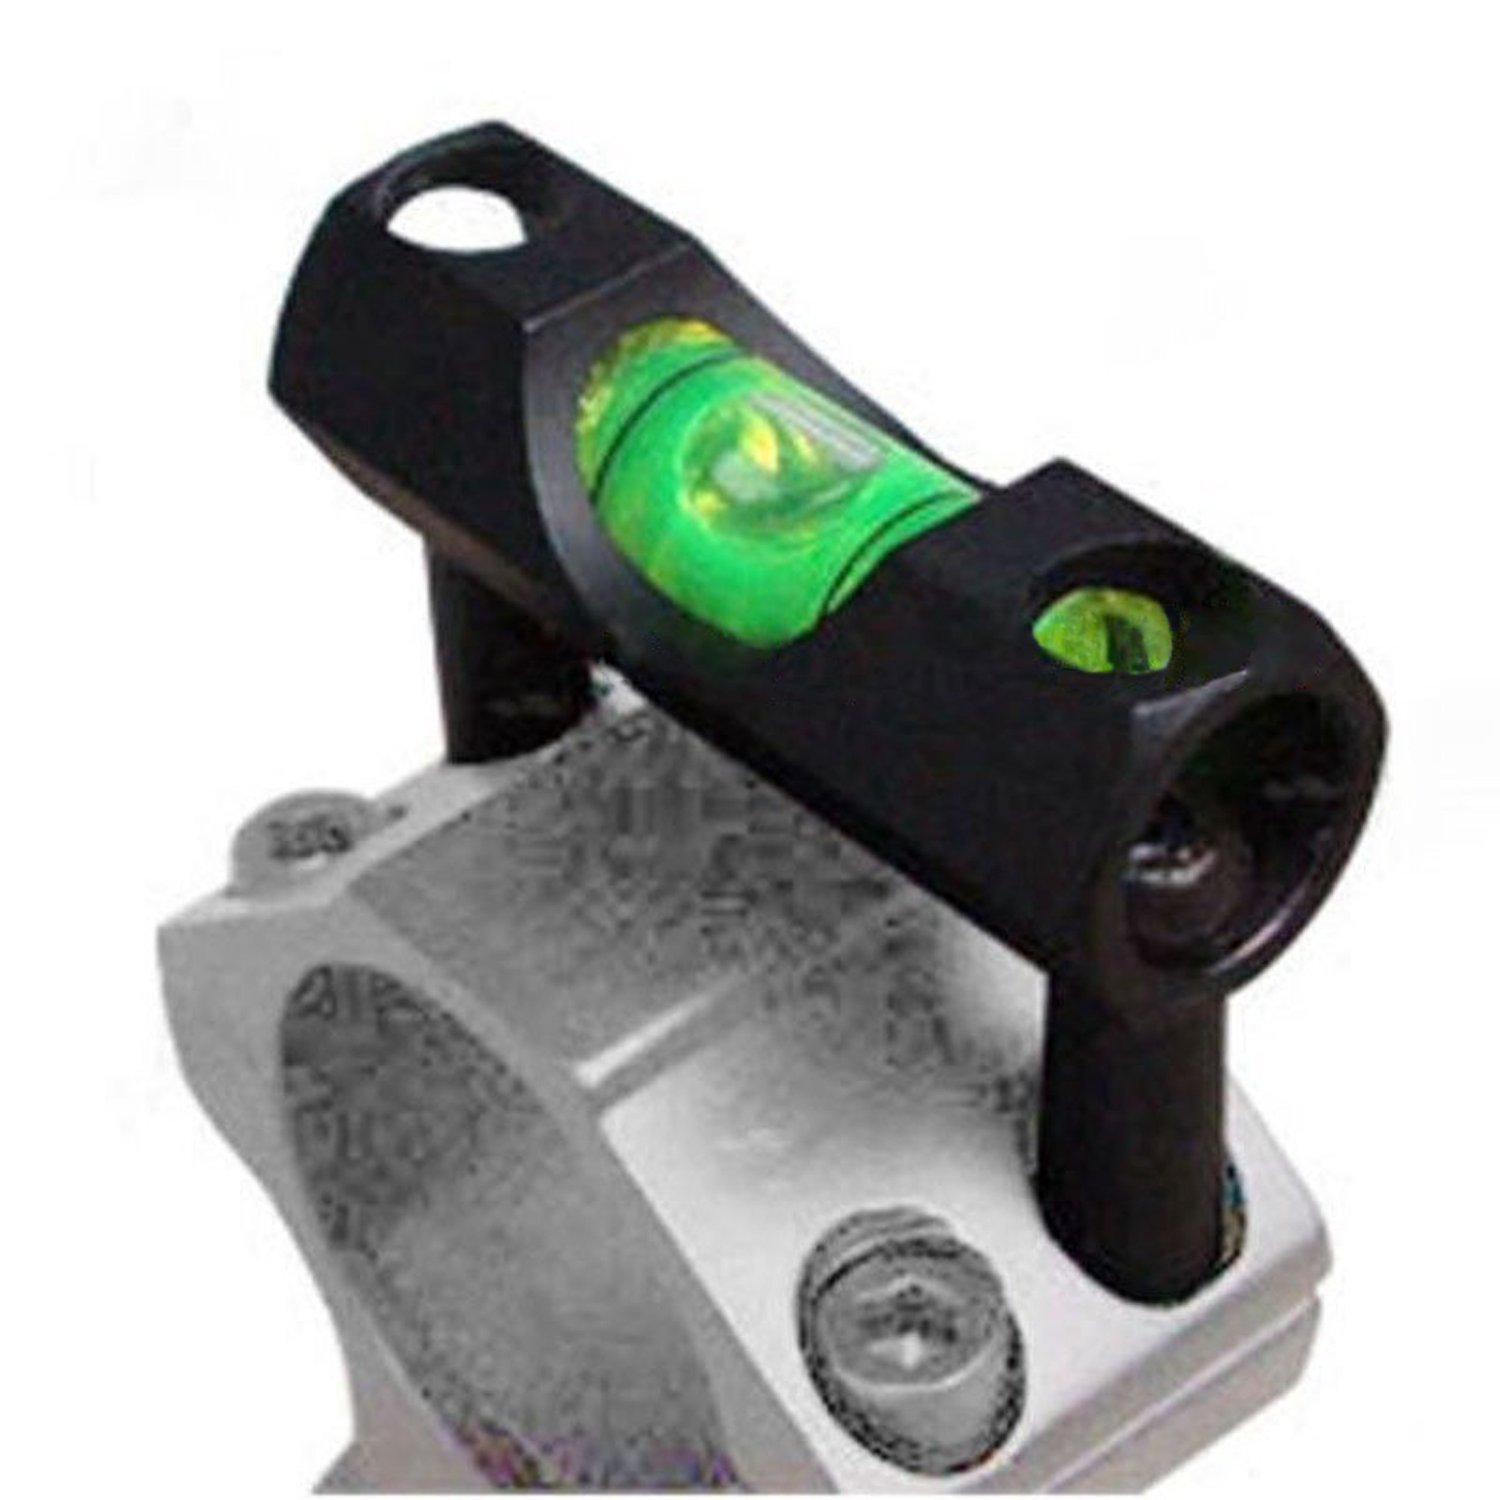 H World Shopping Tactical Alloy Bubble Spirit Level For 25.4mm/1 Rifle Scope Laser Sight Ring Mount Holder